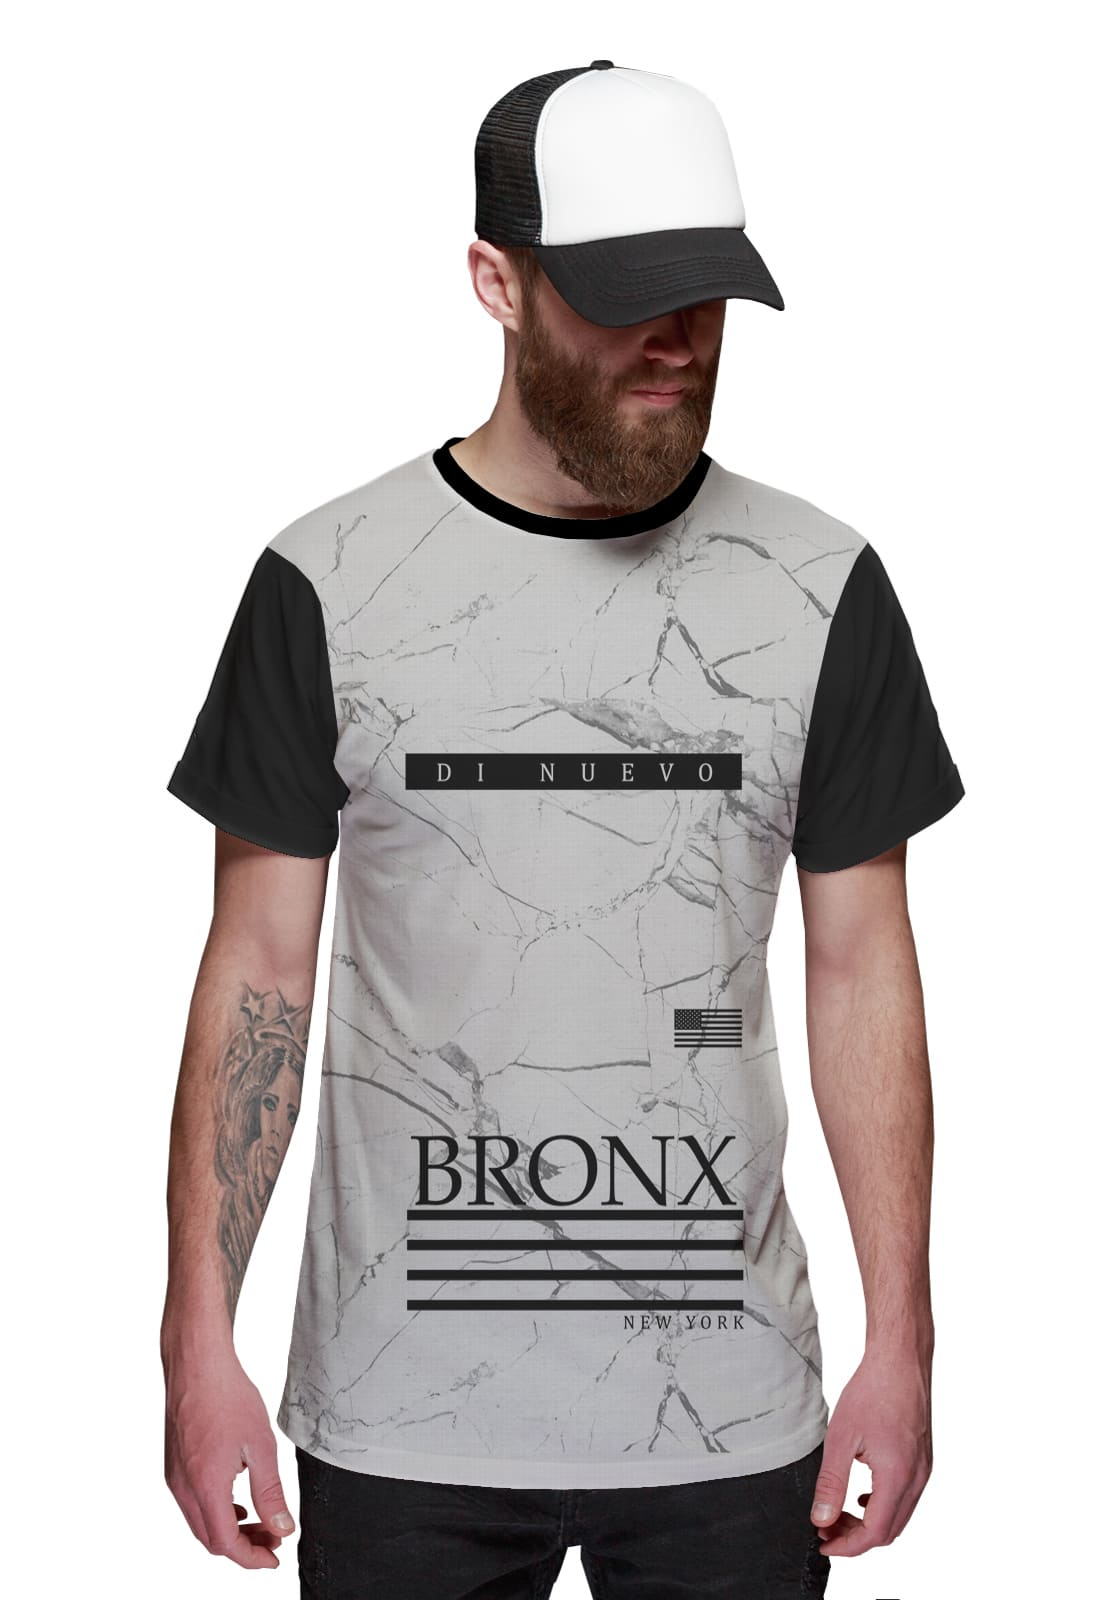 Camiseta Bronx Branca New York  Di Nuevo Street Wear Rap